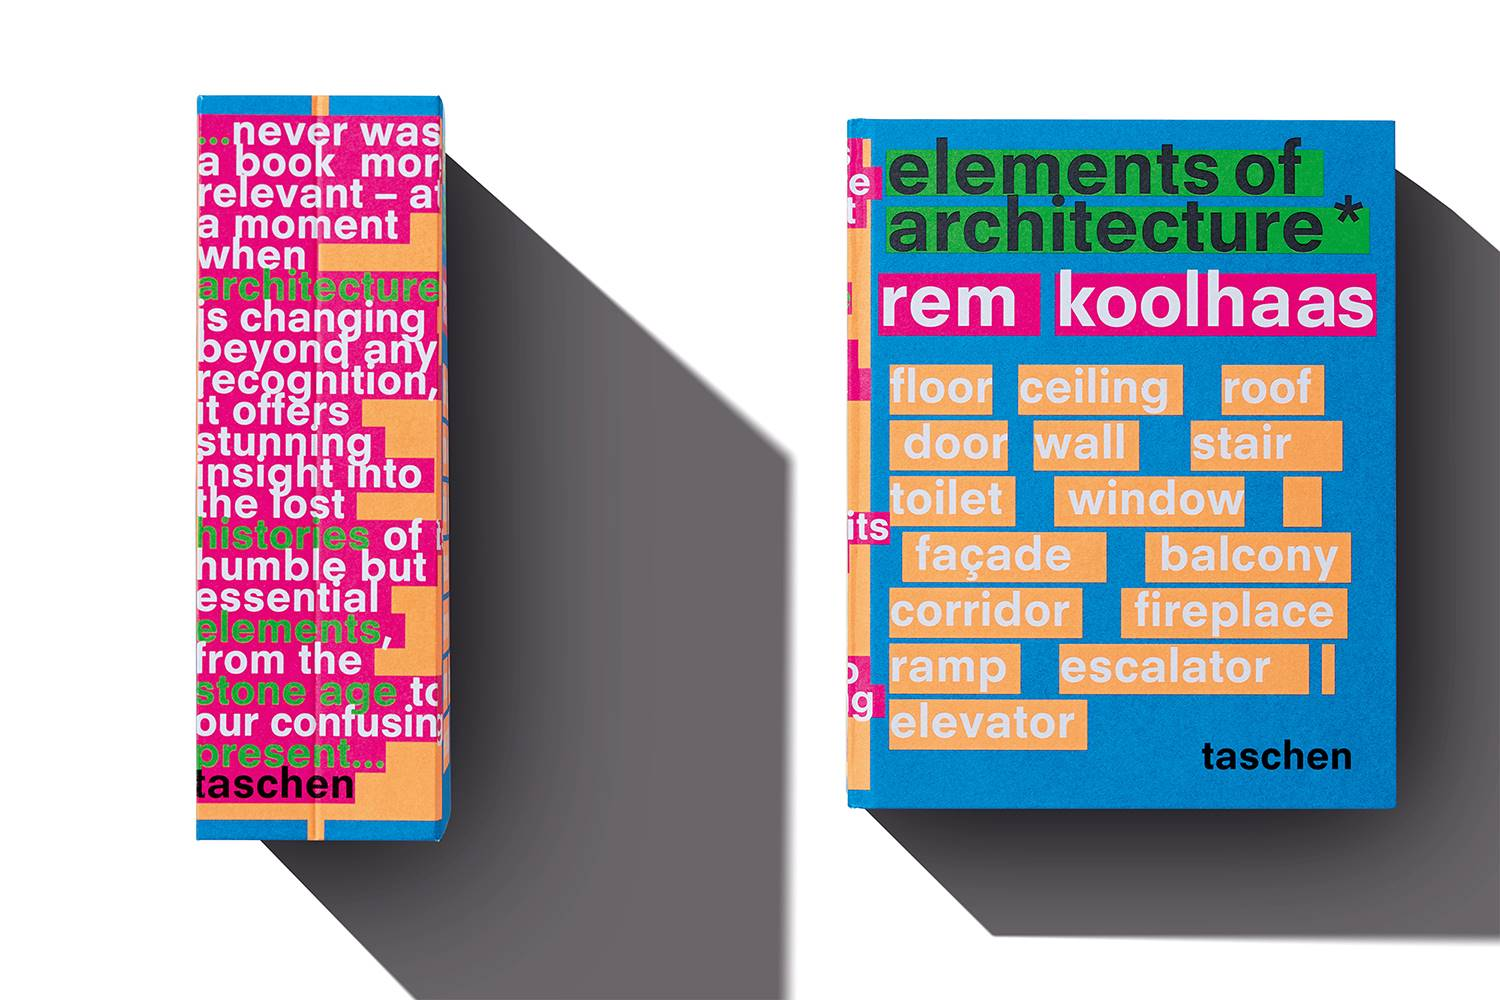 elements-architecture-koolhaas-book-1. [04] Elements of Architecture, Rem Koolhaas, Taschen